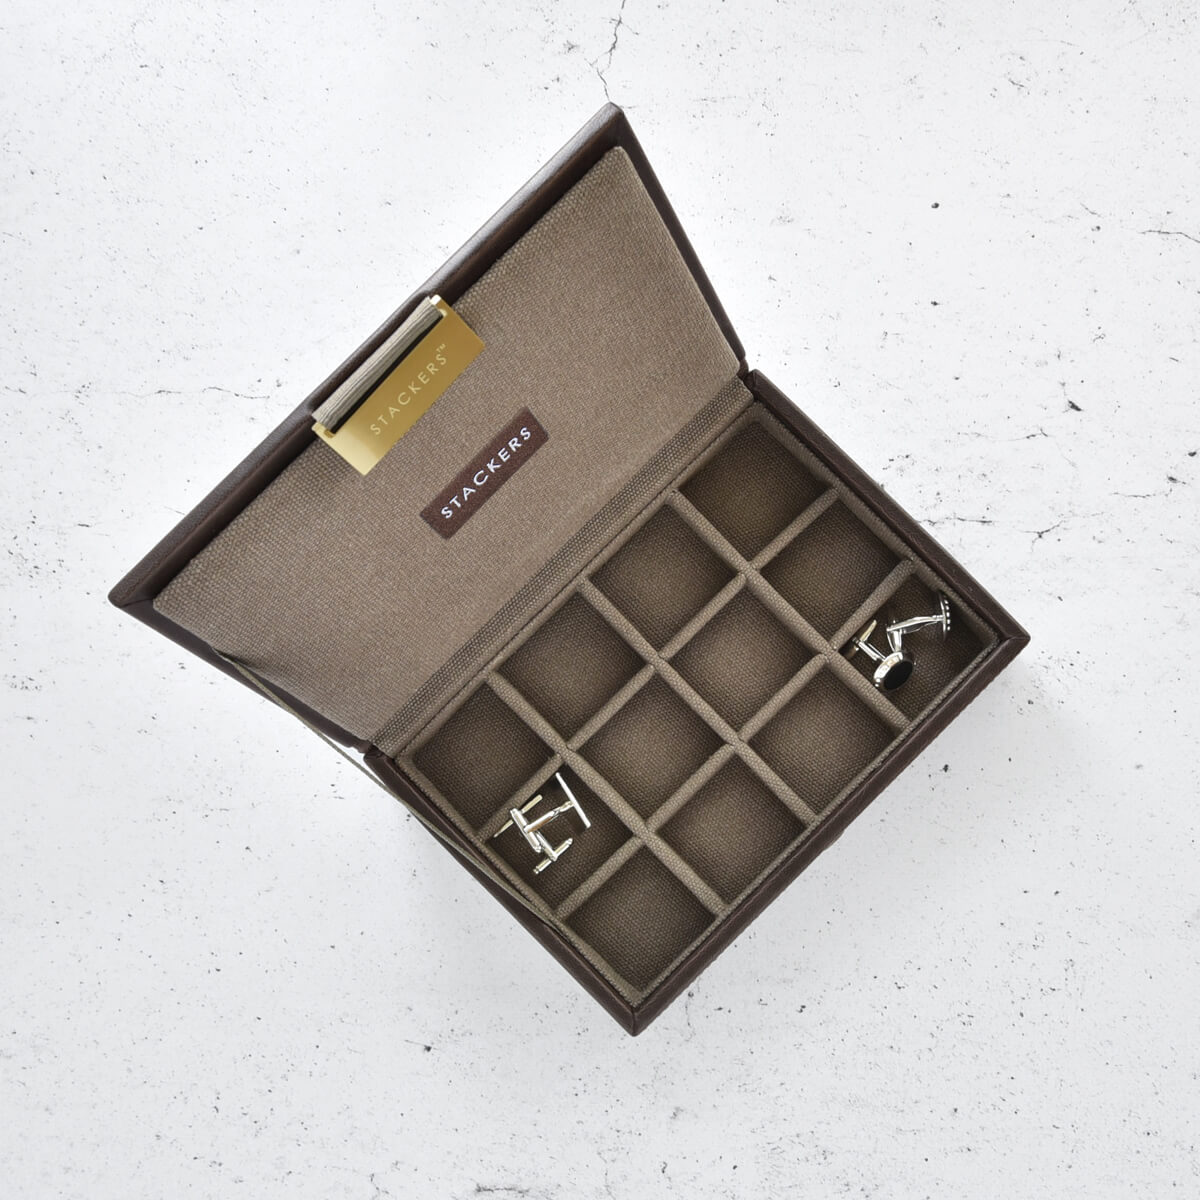 Watch and Cufflink Boxes | Smythson